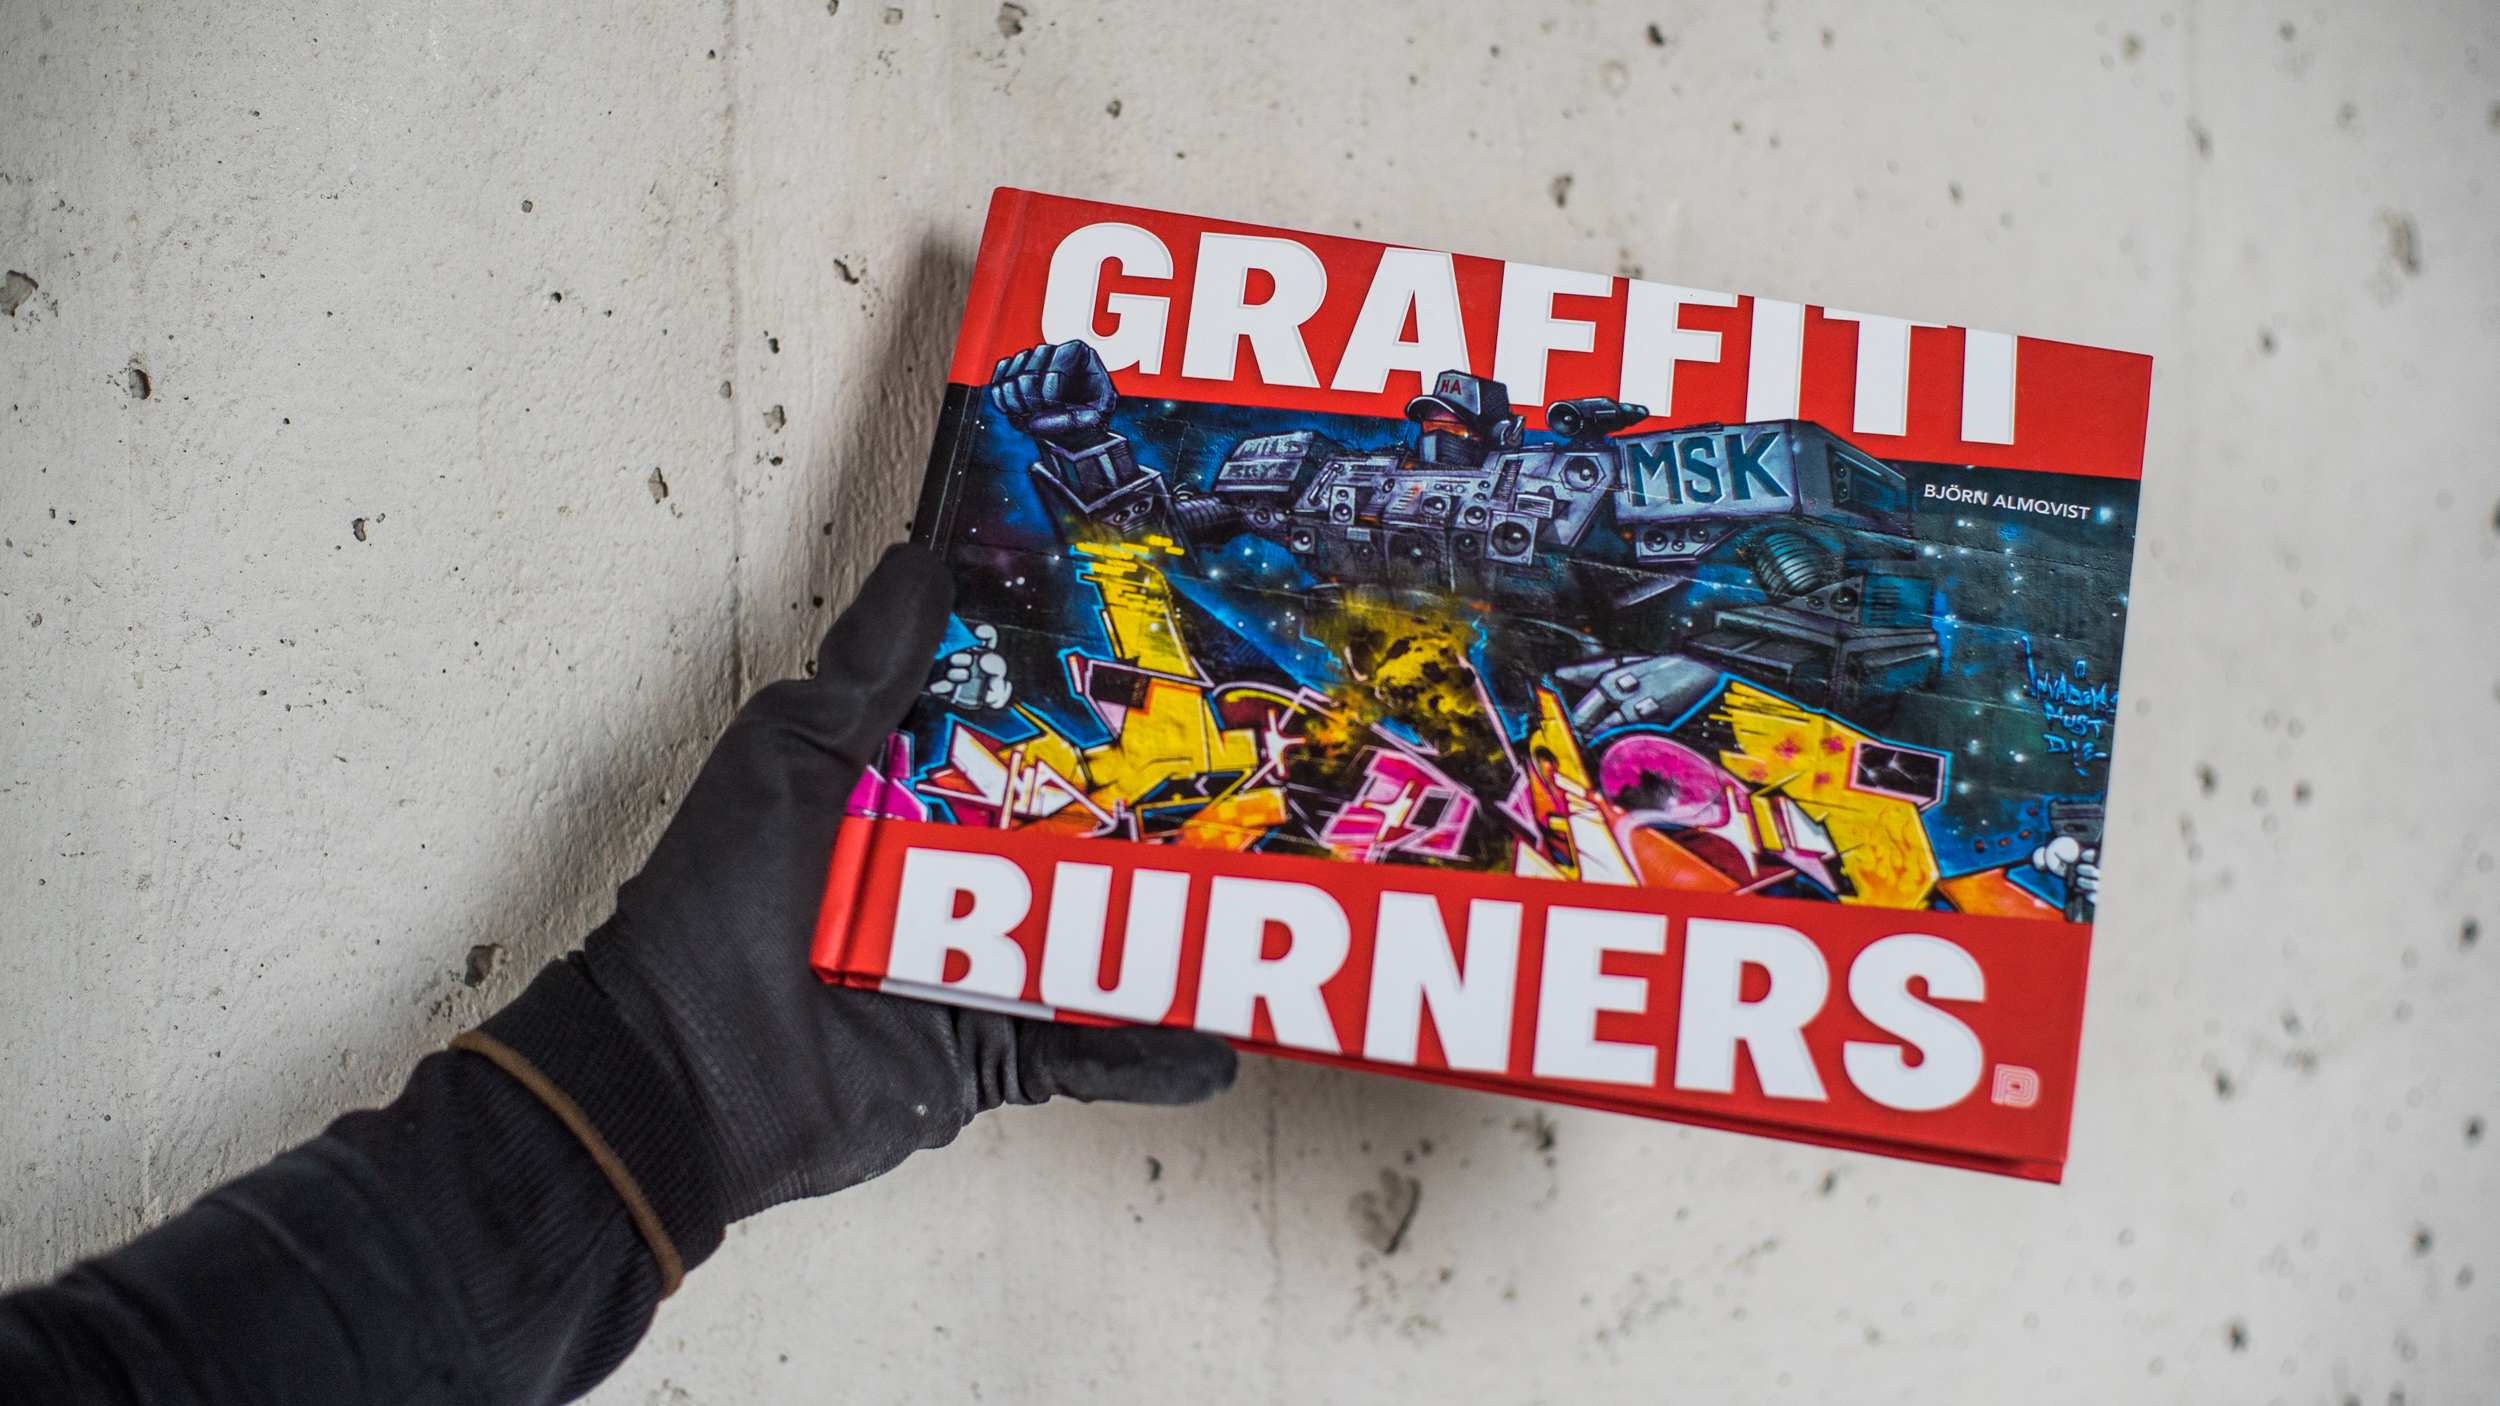 A work by Does - Book graffiti burners cover